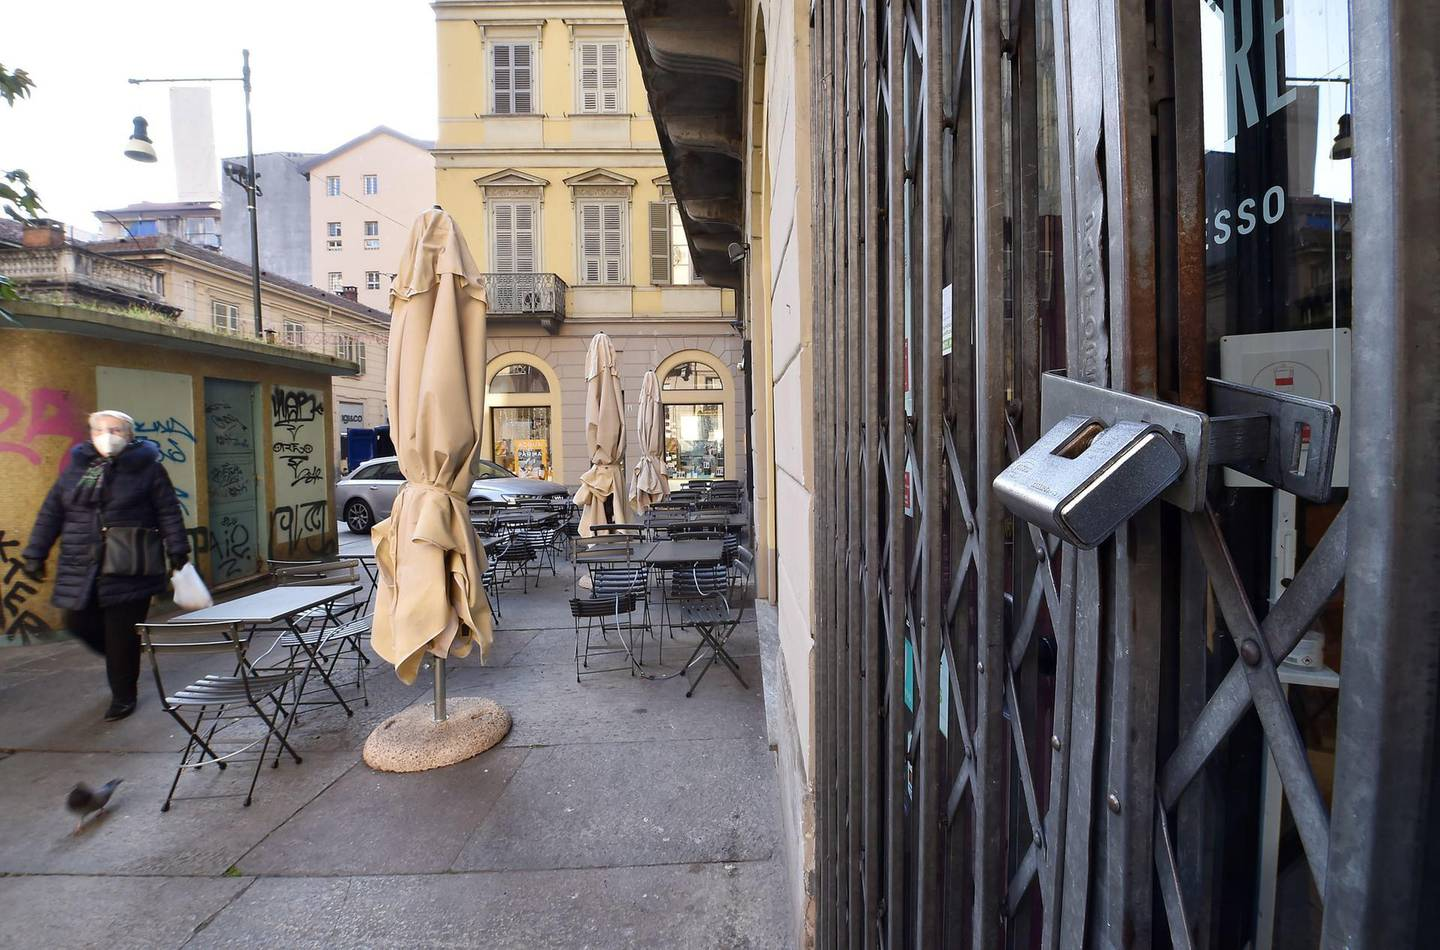 epa08841339 Bars and restaurants are closed during the second wave of the Covid-19 Coronavirus pandemic, in Turin, Italy, 25 November 2020. Italy fights with the second wave of pandemic of the SARS-CoV-2 coronavirus which causes the Covid-19 disease.  EPA/ALESSANDRO DI MARCO